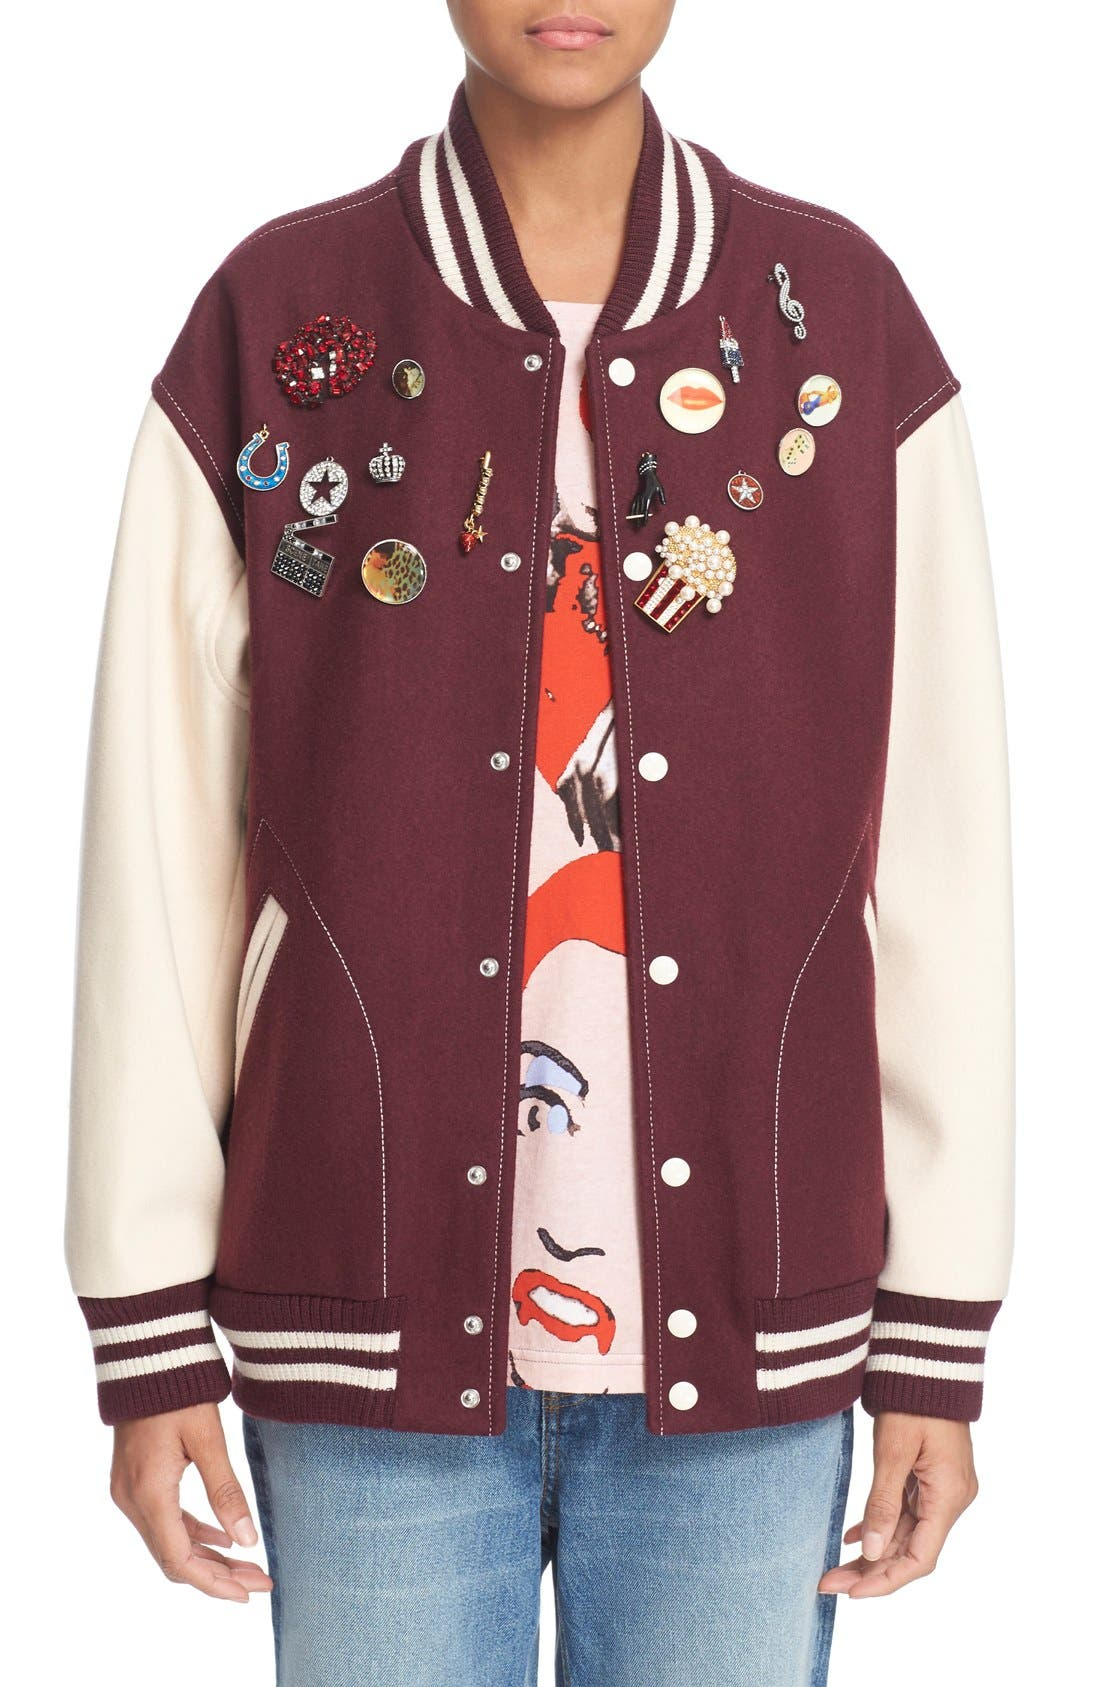 MARC JACOBS Embellished Varsity Jacket